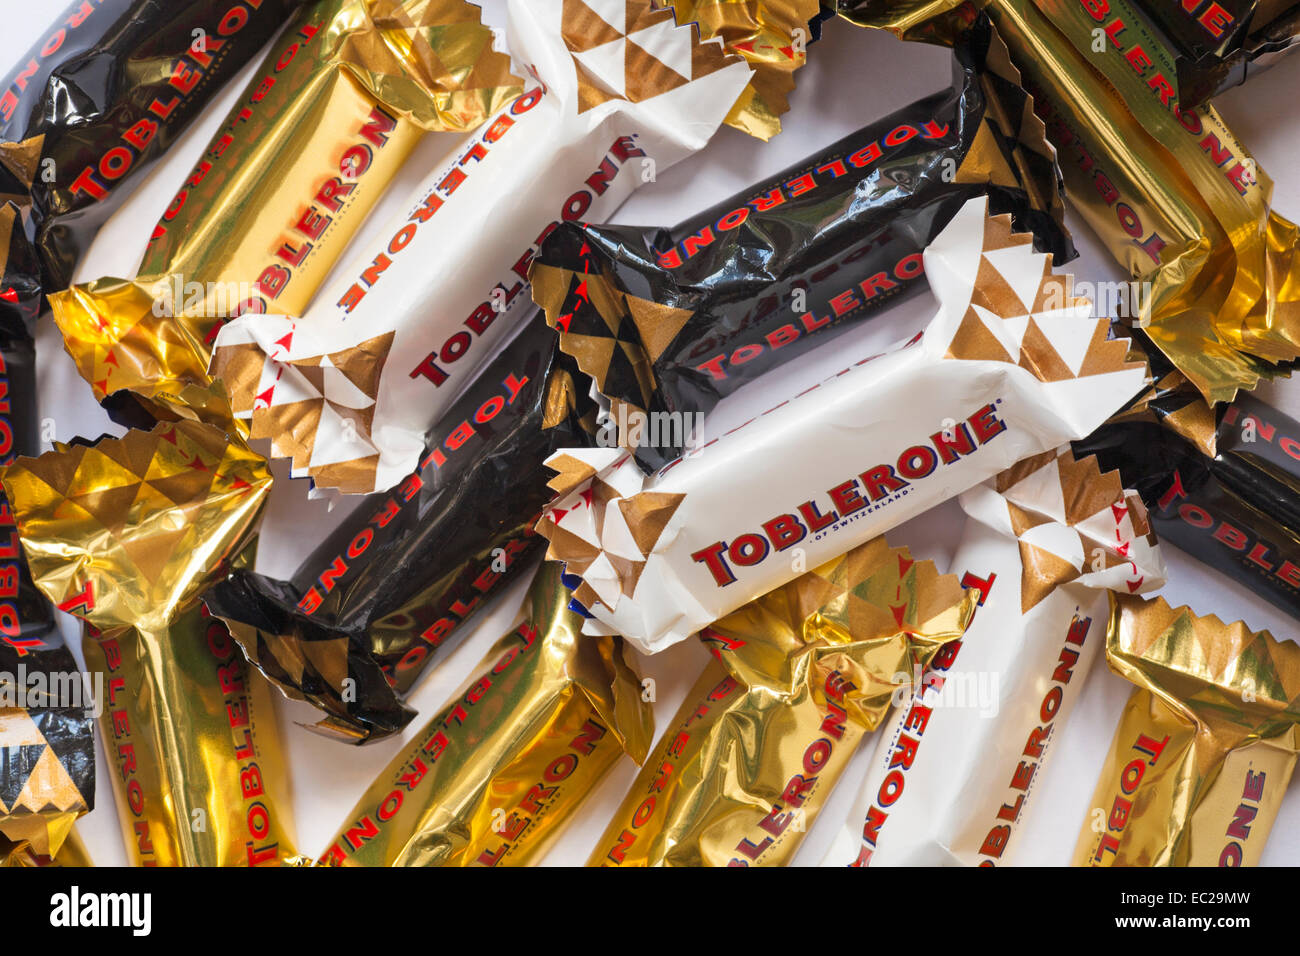 Toblerone Stock Photos Toblerone Stock Images Alamy